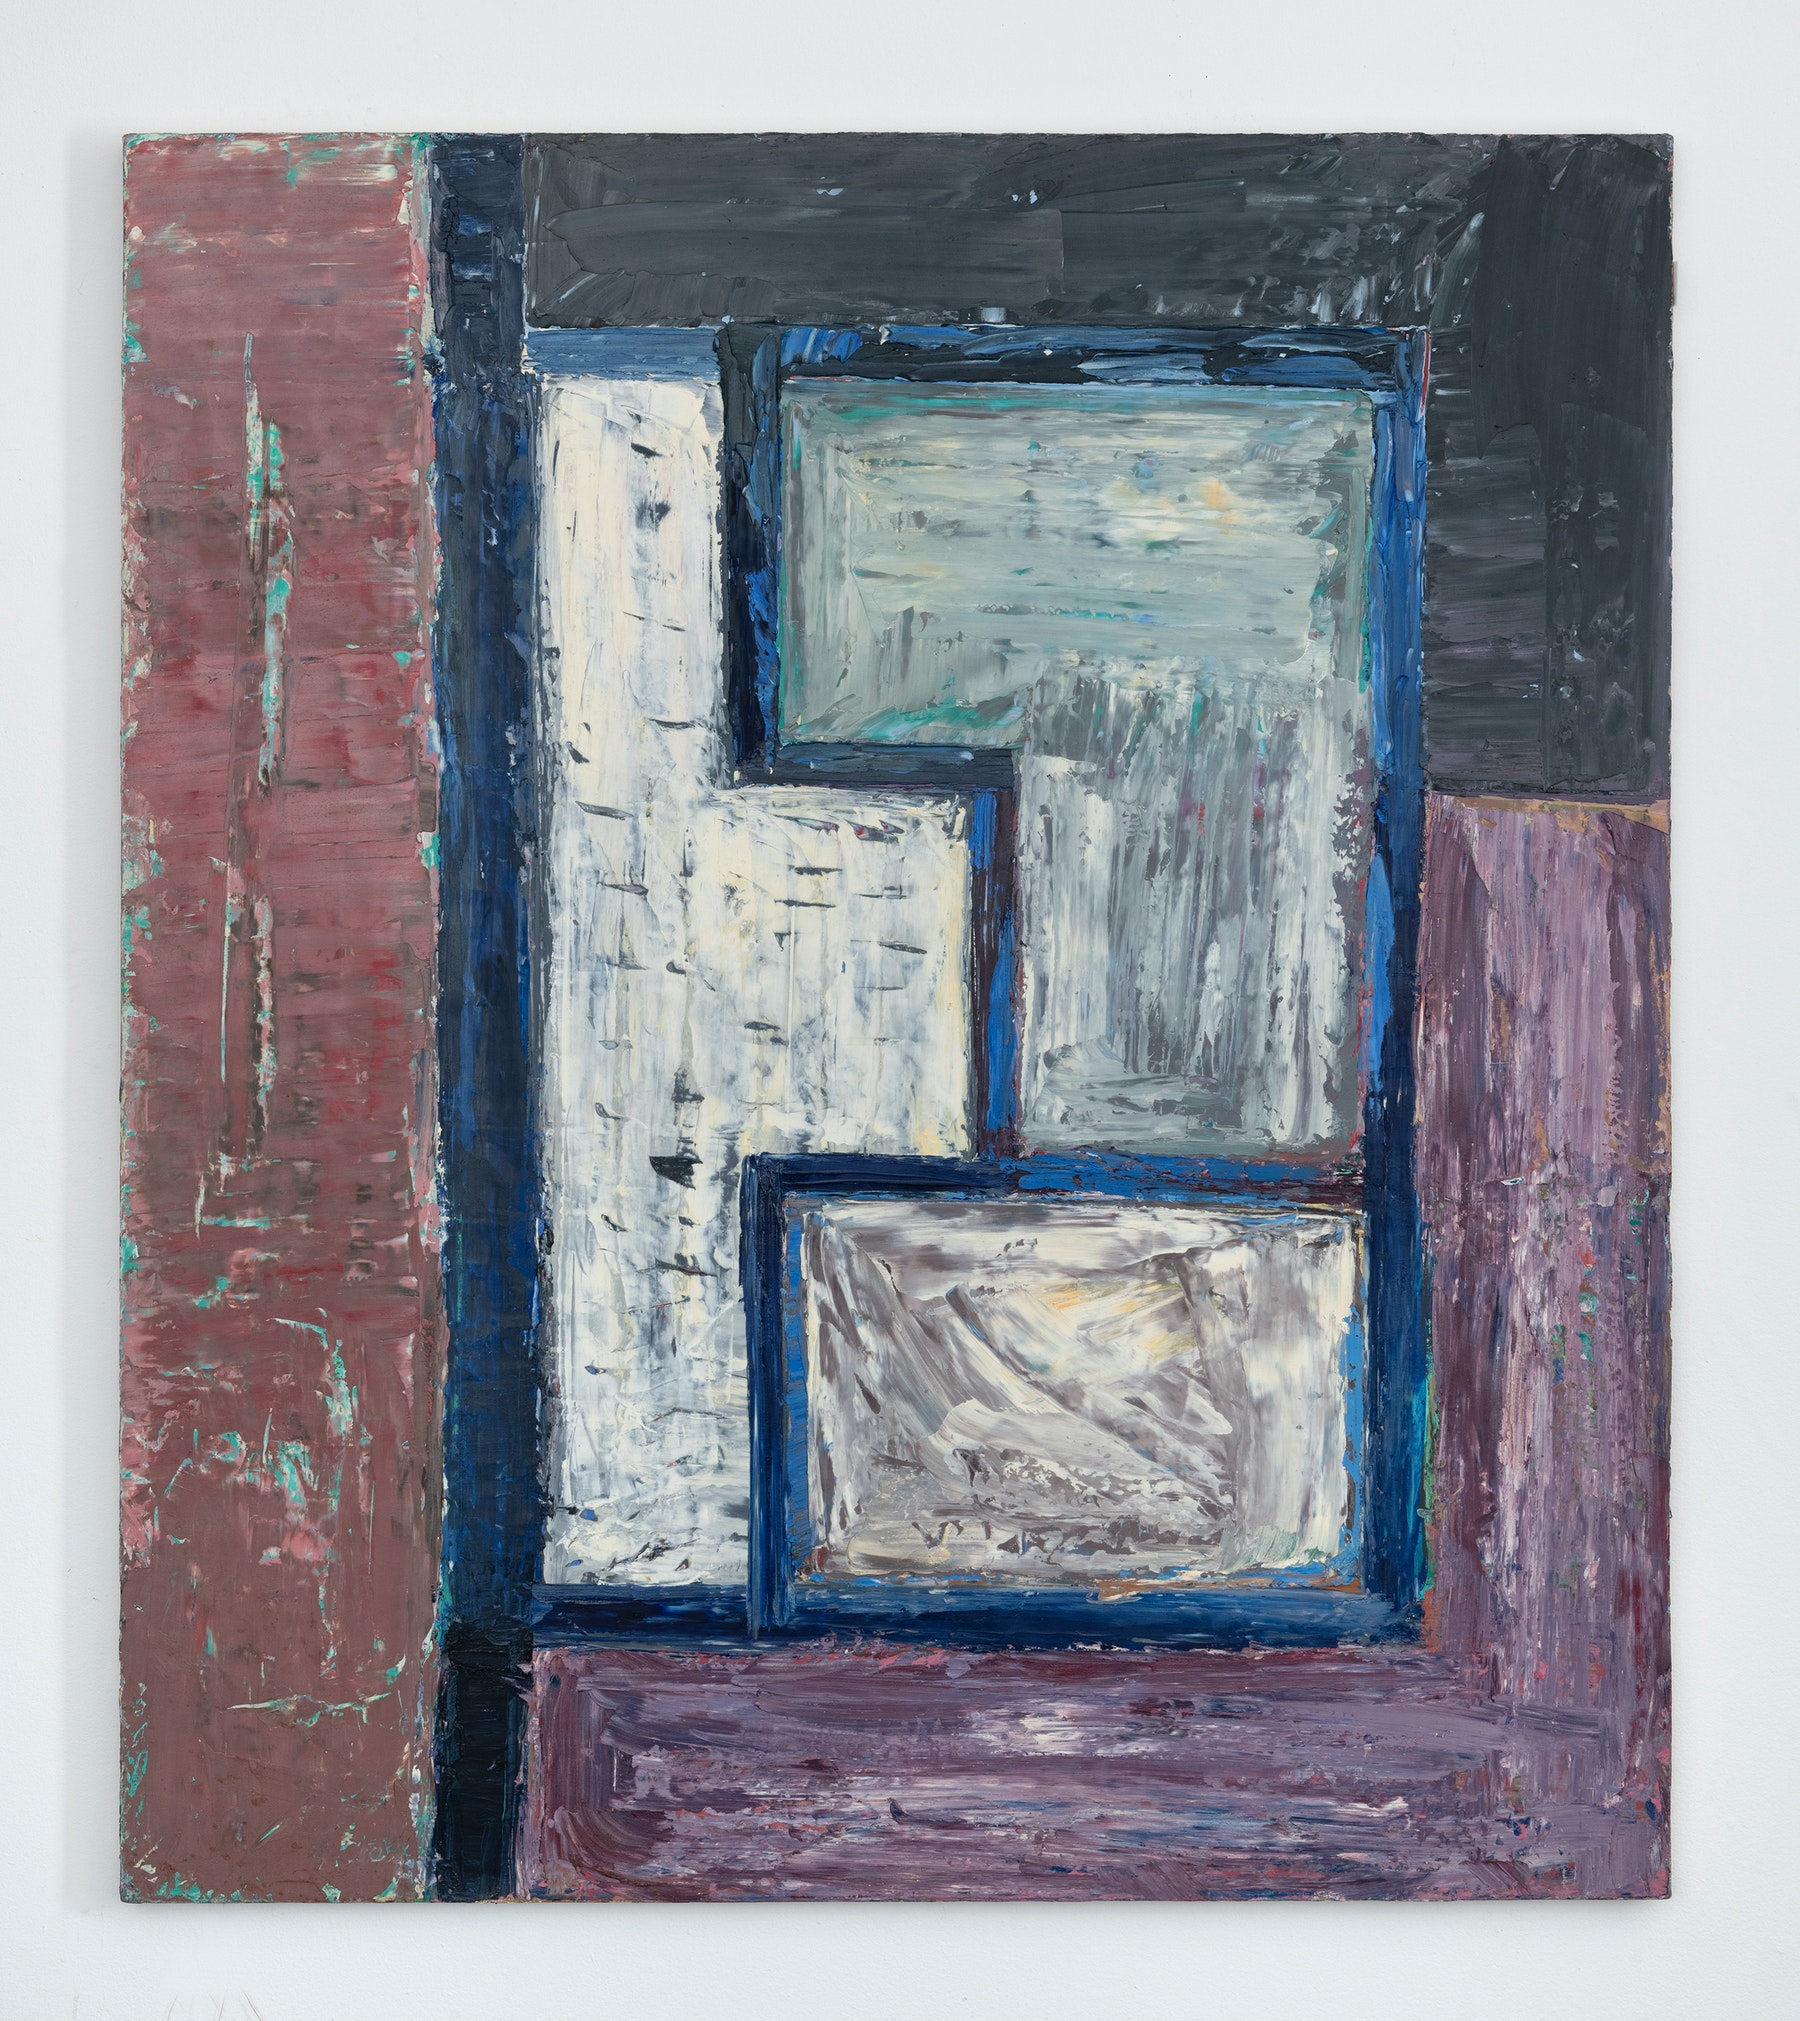 """Louise Fishman """"NEIGHBOR ROSICKY,"""" 1978 Oil on linen 48"""" x 41"""" [HxW] (121.92 x 104.14 cm) Inventory #FIS168 Courtesy of the artist and Vielmetter Los Angeles Photo credit: Adam Reich"""